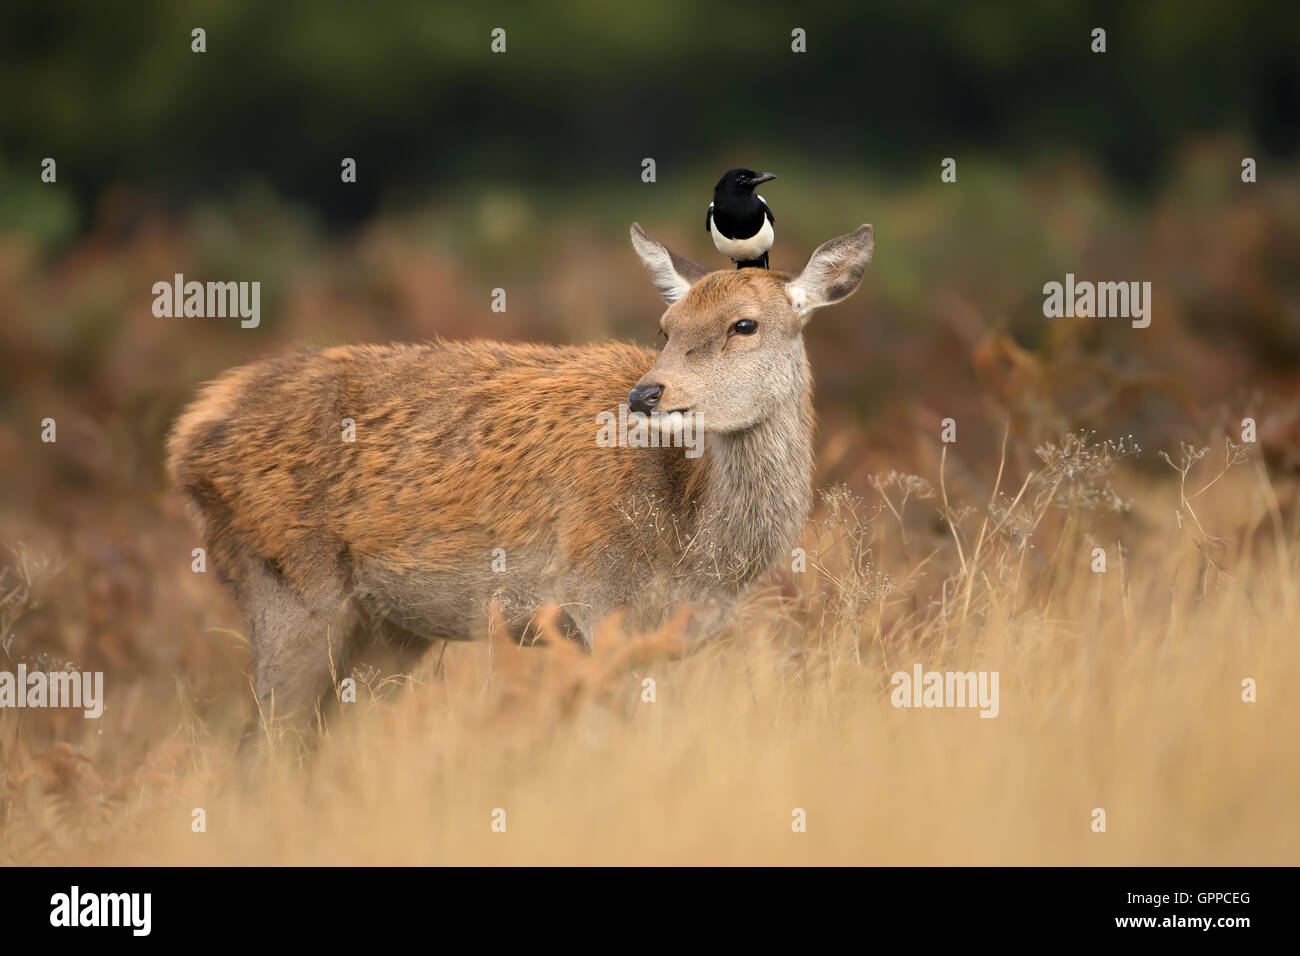 Red deer hind with a magpie on her head Stock Photo